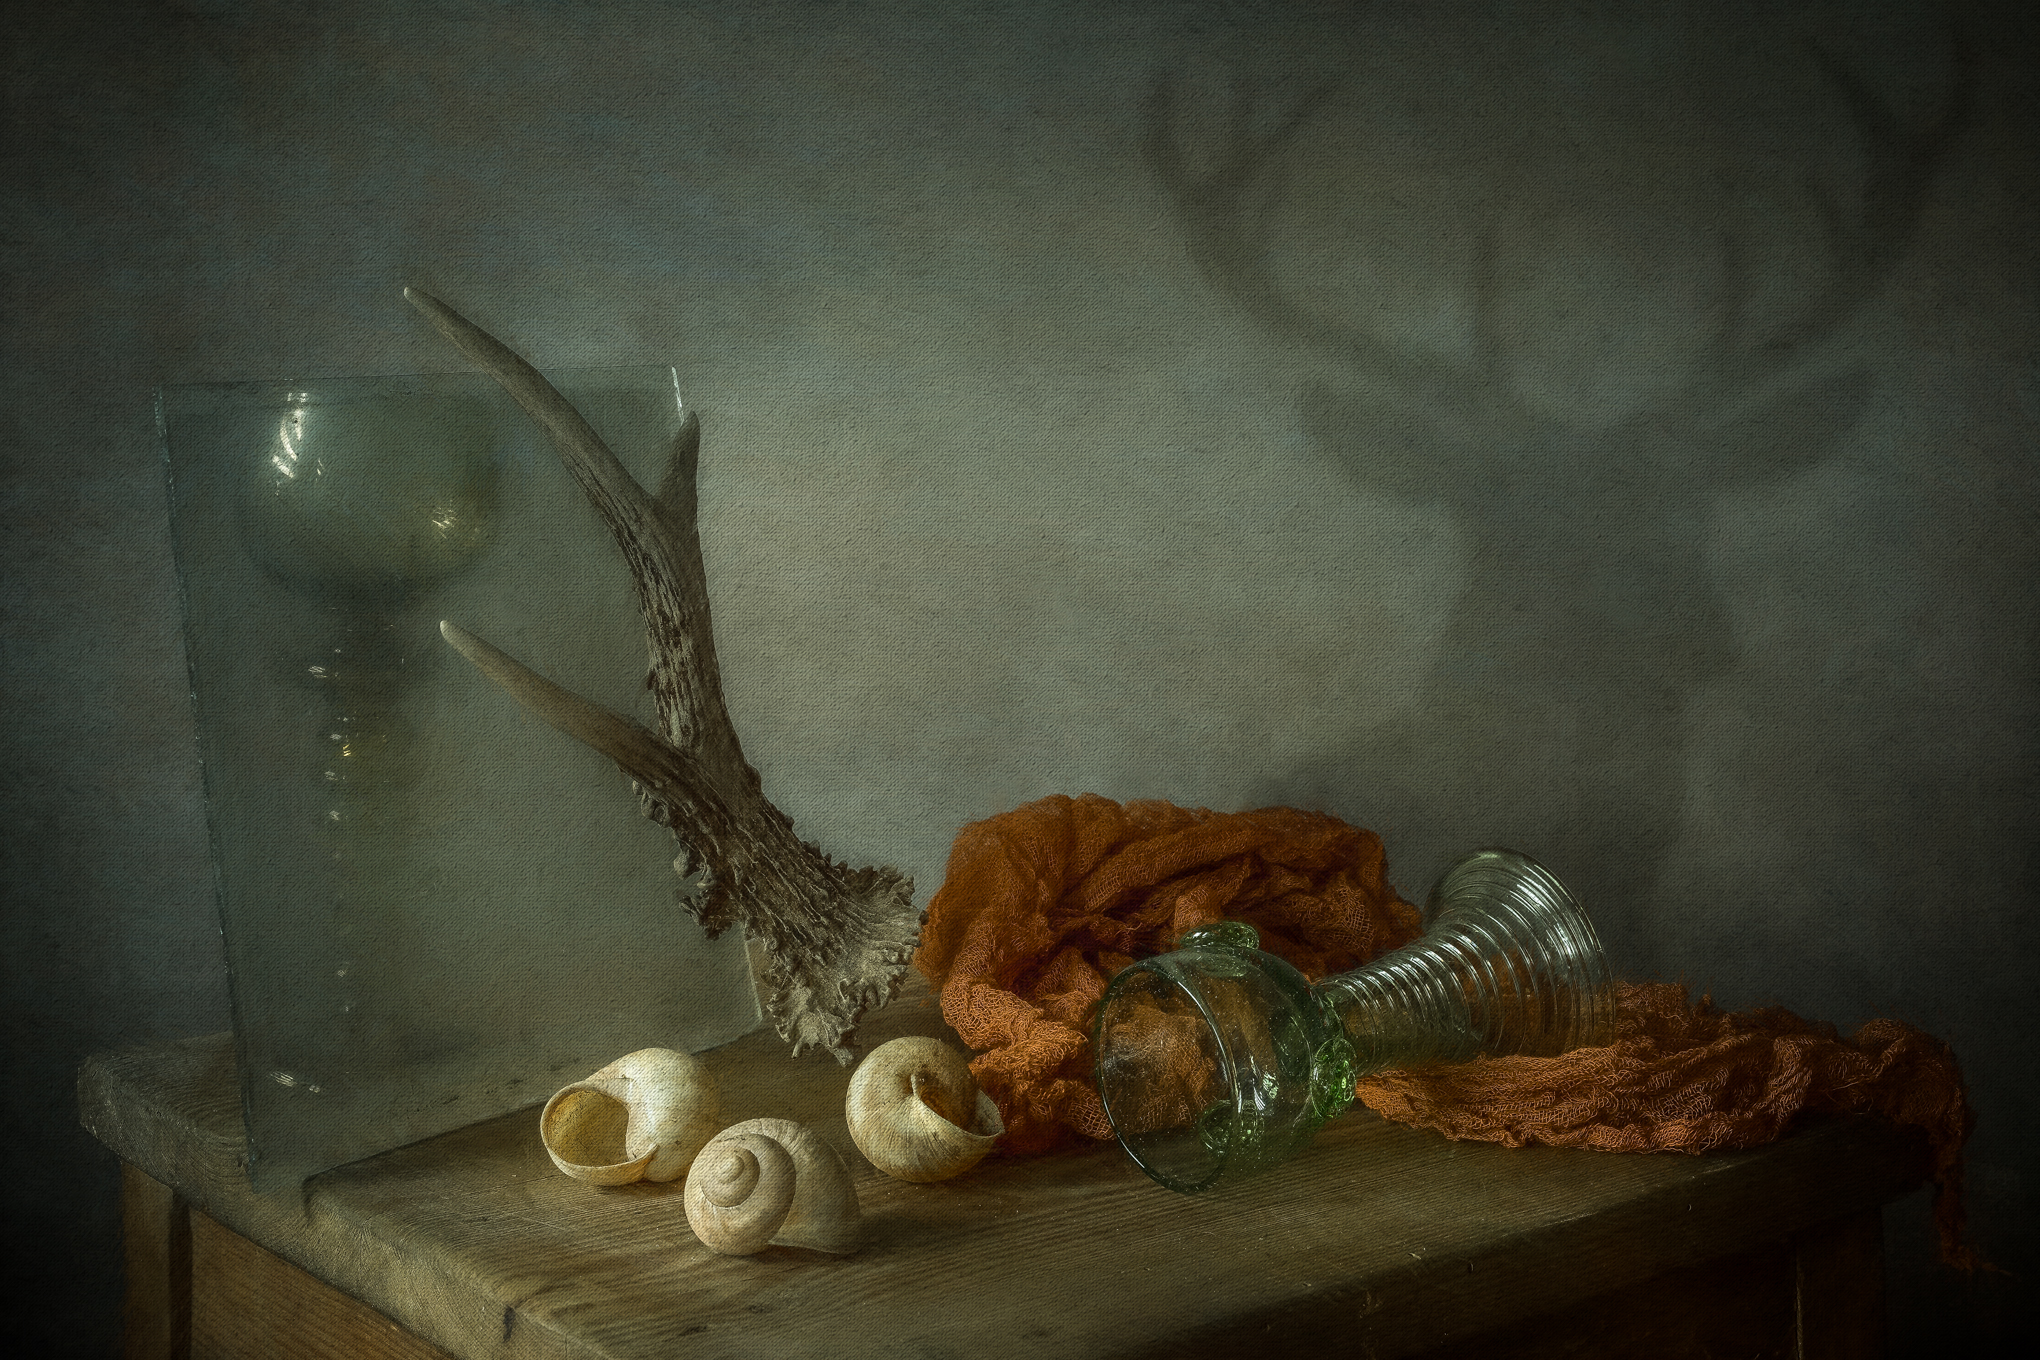 still life, composition, vintage, memory, deer, old, dutch painting, dutch, painting, Iwona Czubek